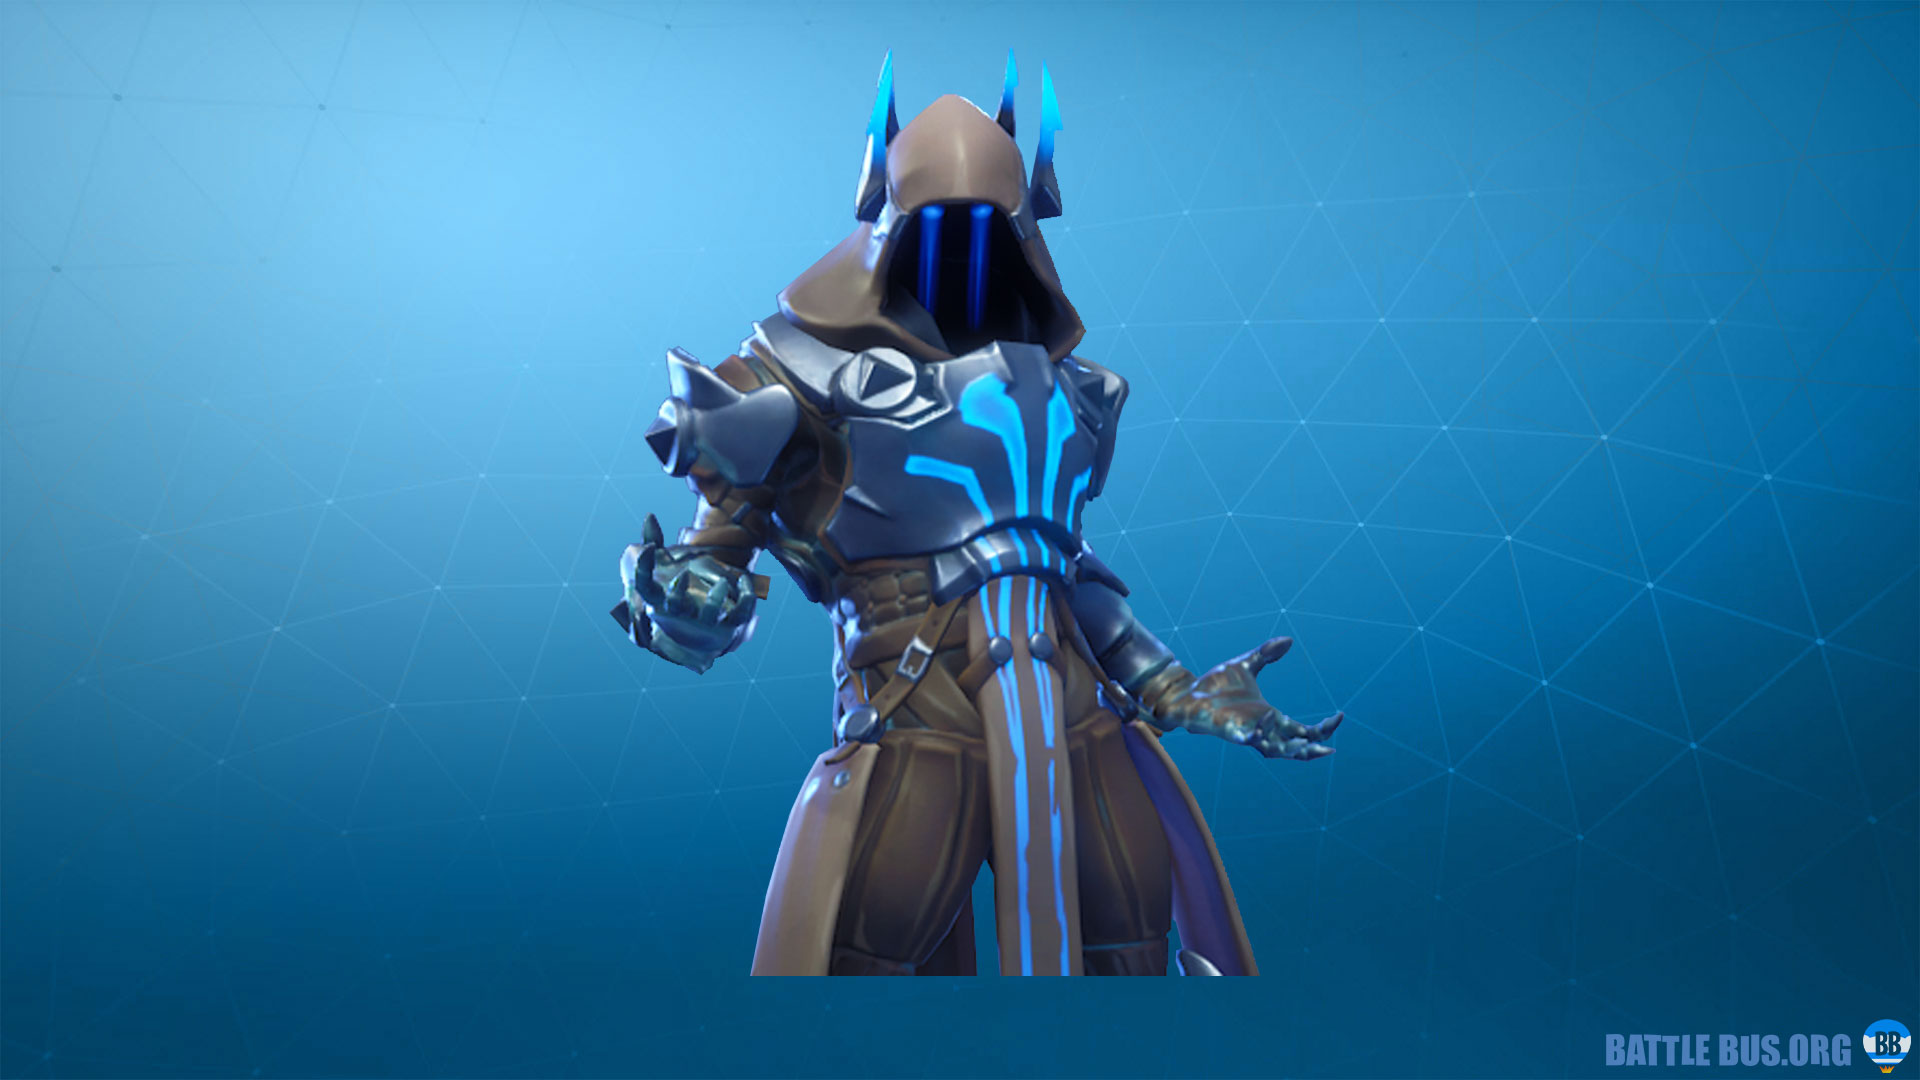 Ice king   Epic Fortnite Skin Season 7 4425 Wallpapers and 1920x1080